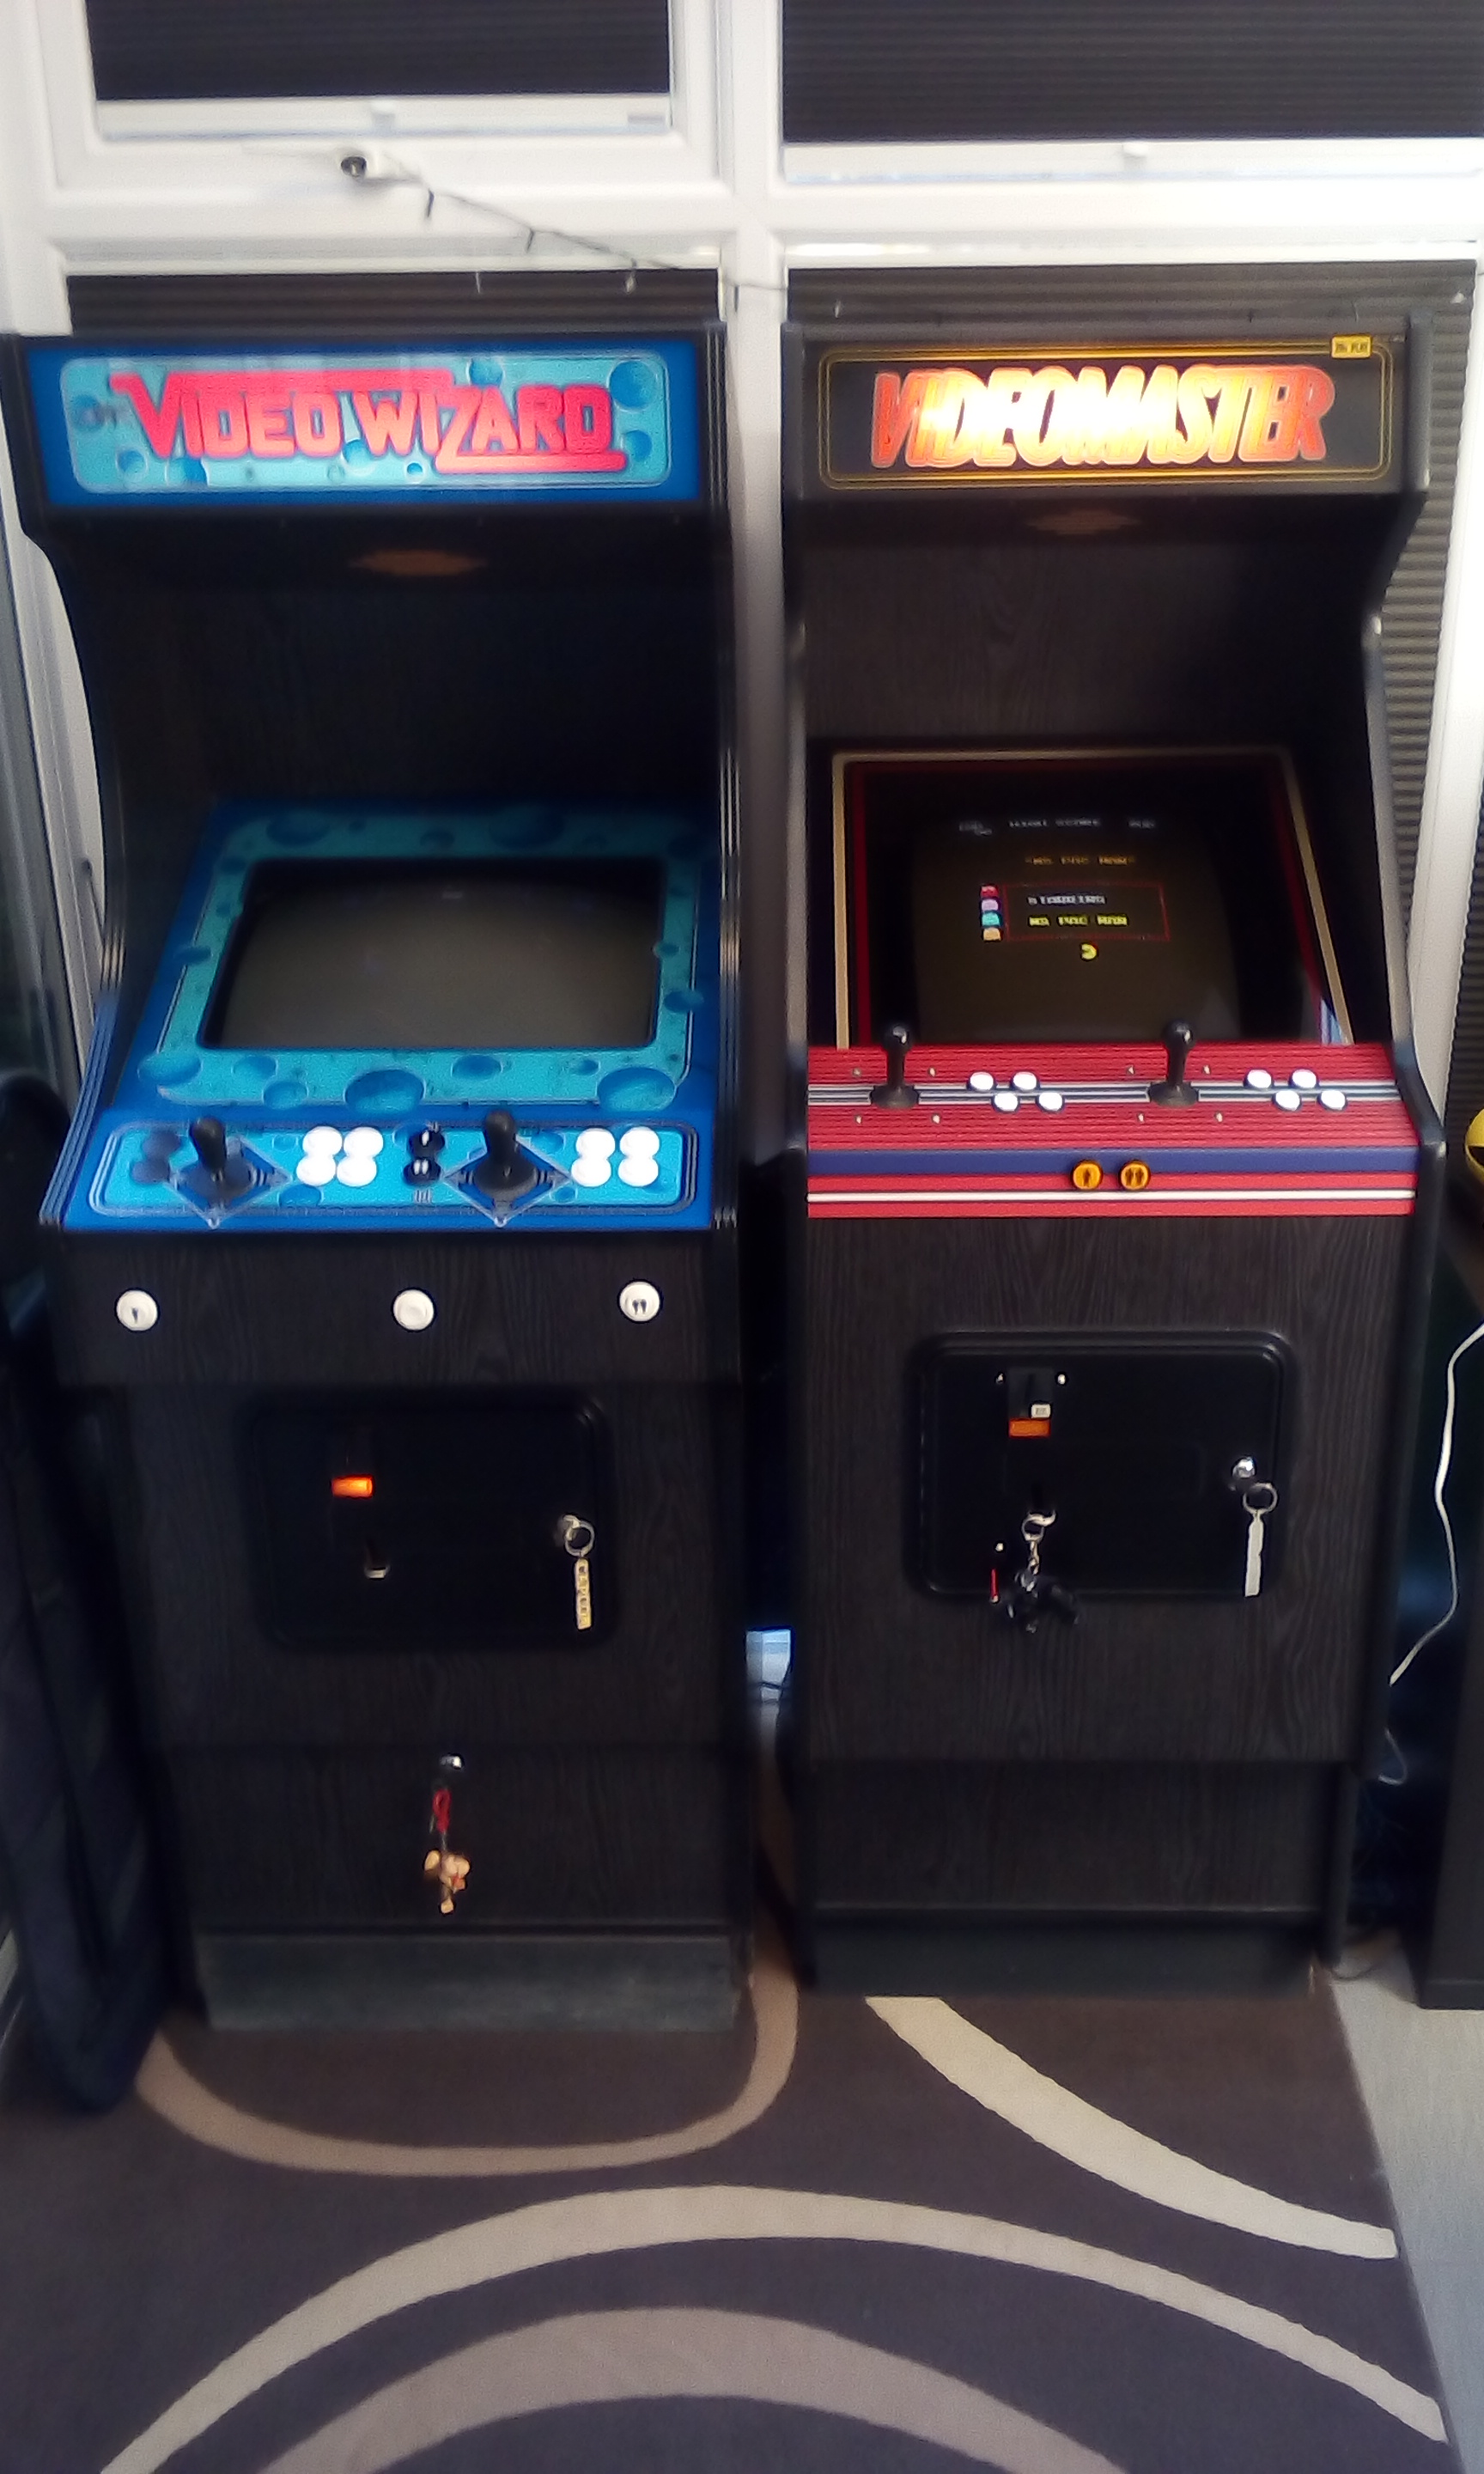 Hi 64x26x22  19  monitor also have a video wizard about the same size I will probably be looking to move on. & Subelectro arcade cabinet wanted - UK-VAC : UK Video Arcade ...